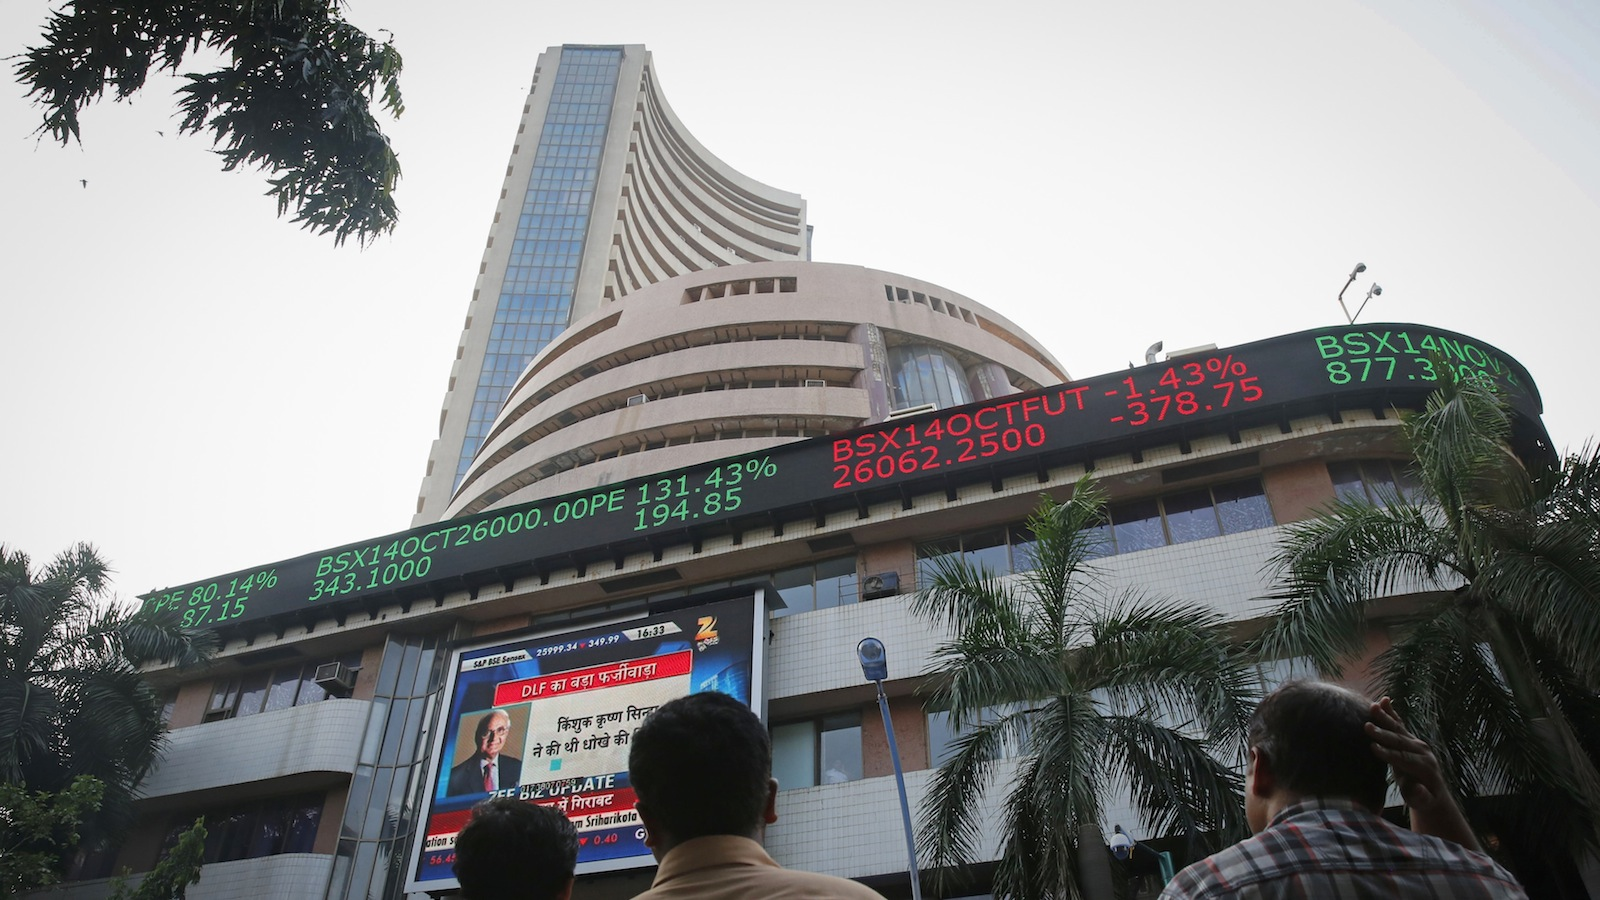 People watch a large screen displaying India's benchmark share index on the facade of the Bombay Stock Exchange (BSE) building in Mumbai October 16, 2014. Indian shares fell for a second consecutive session on Thursday, as companies seen most exposed to the global economy such as Hindalco Industries and Sesa Sterlite declined tracking a downturn in global markets.